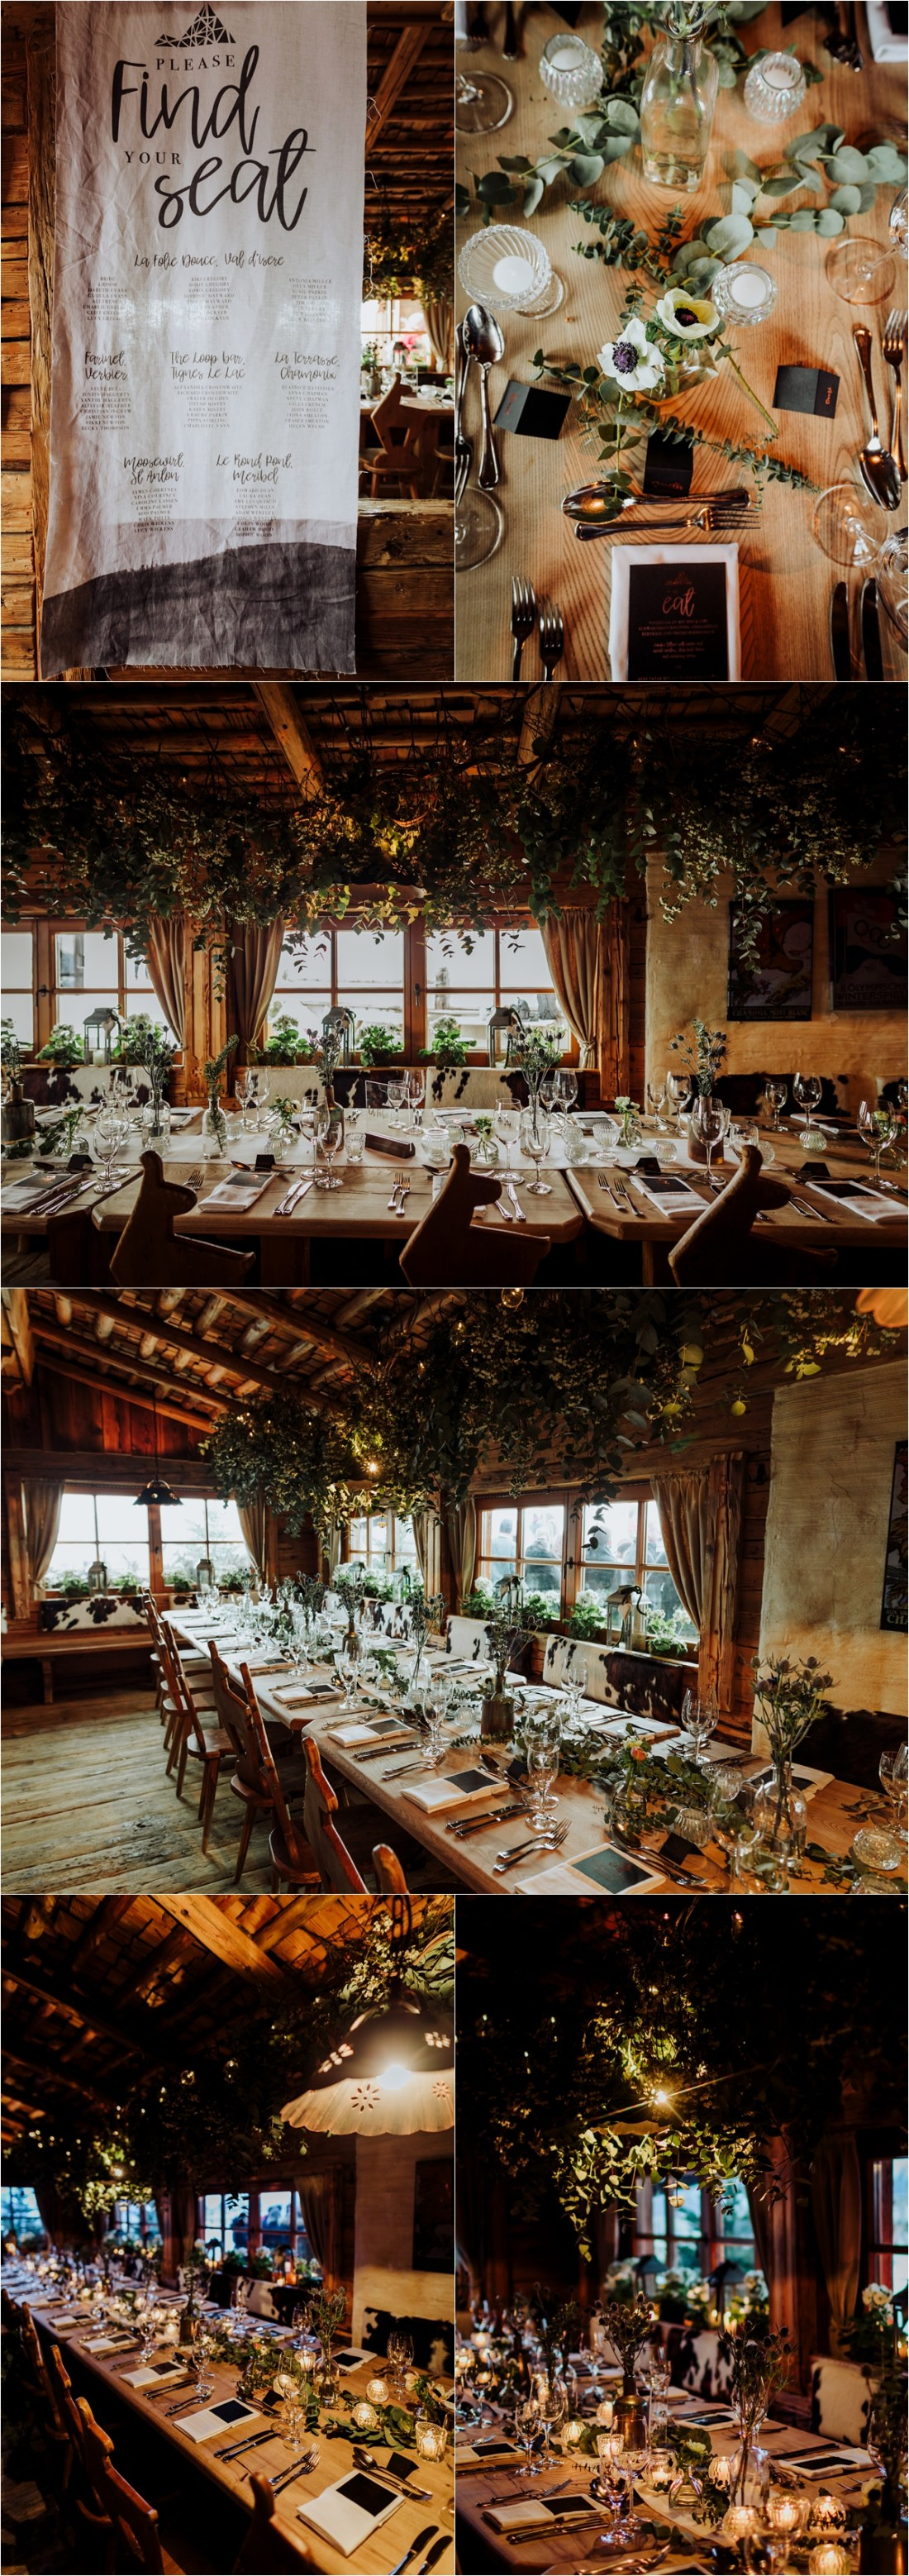 A magical winter garden feel for this ski lodge wedding in Austria by Wild Connections Photography